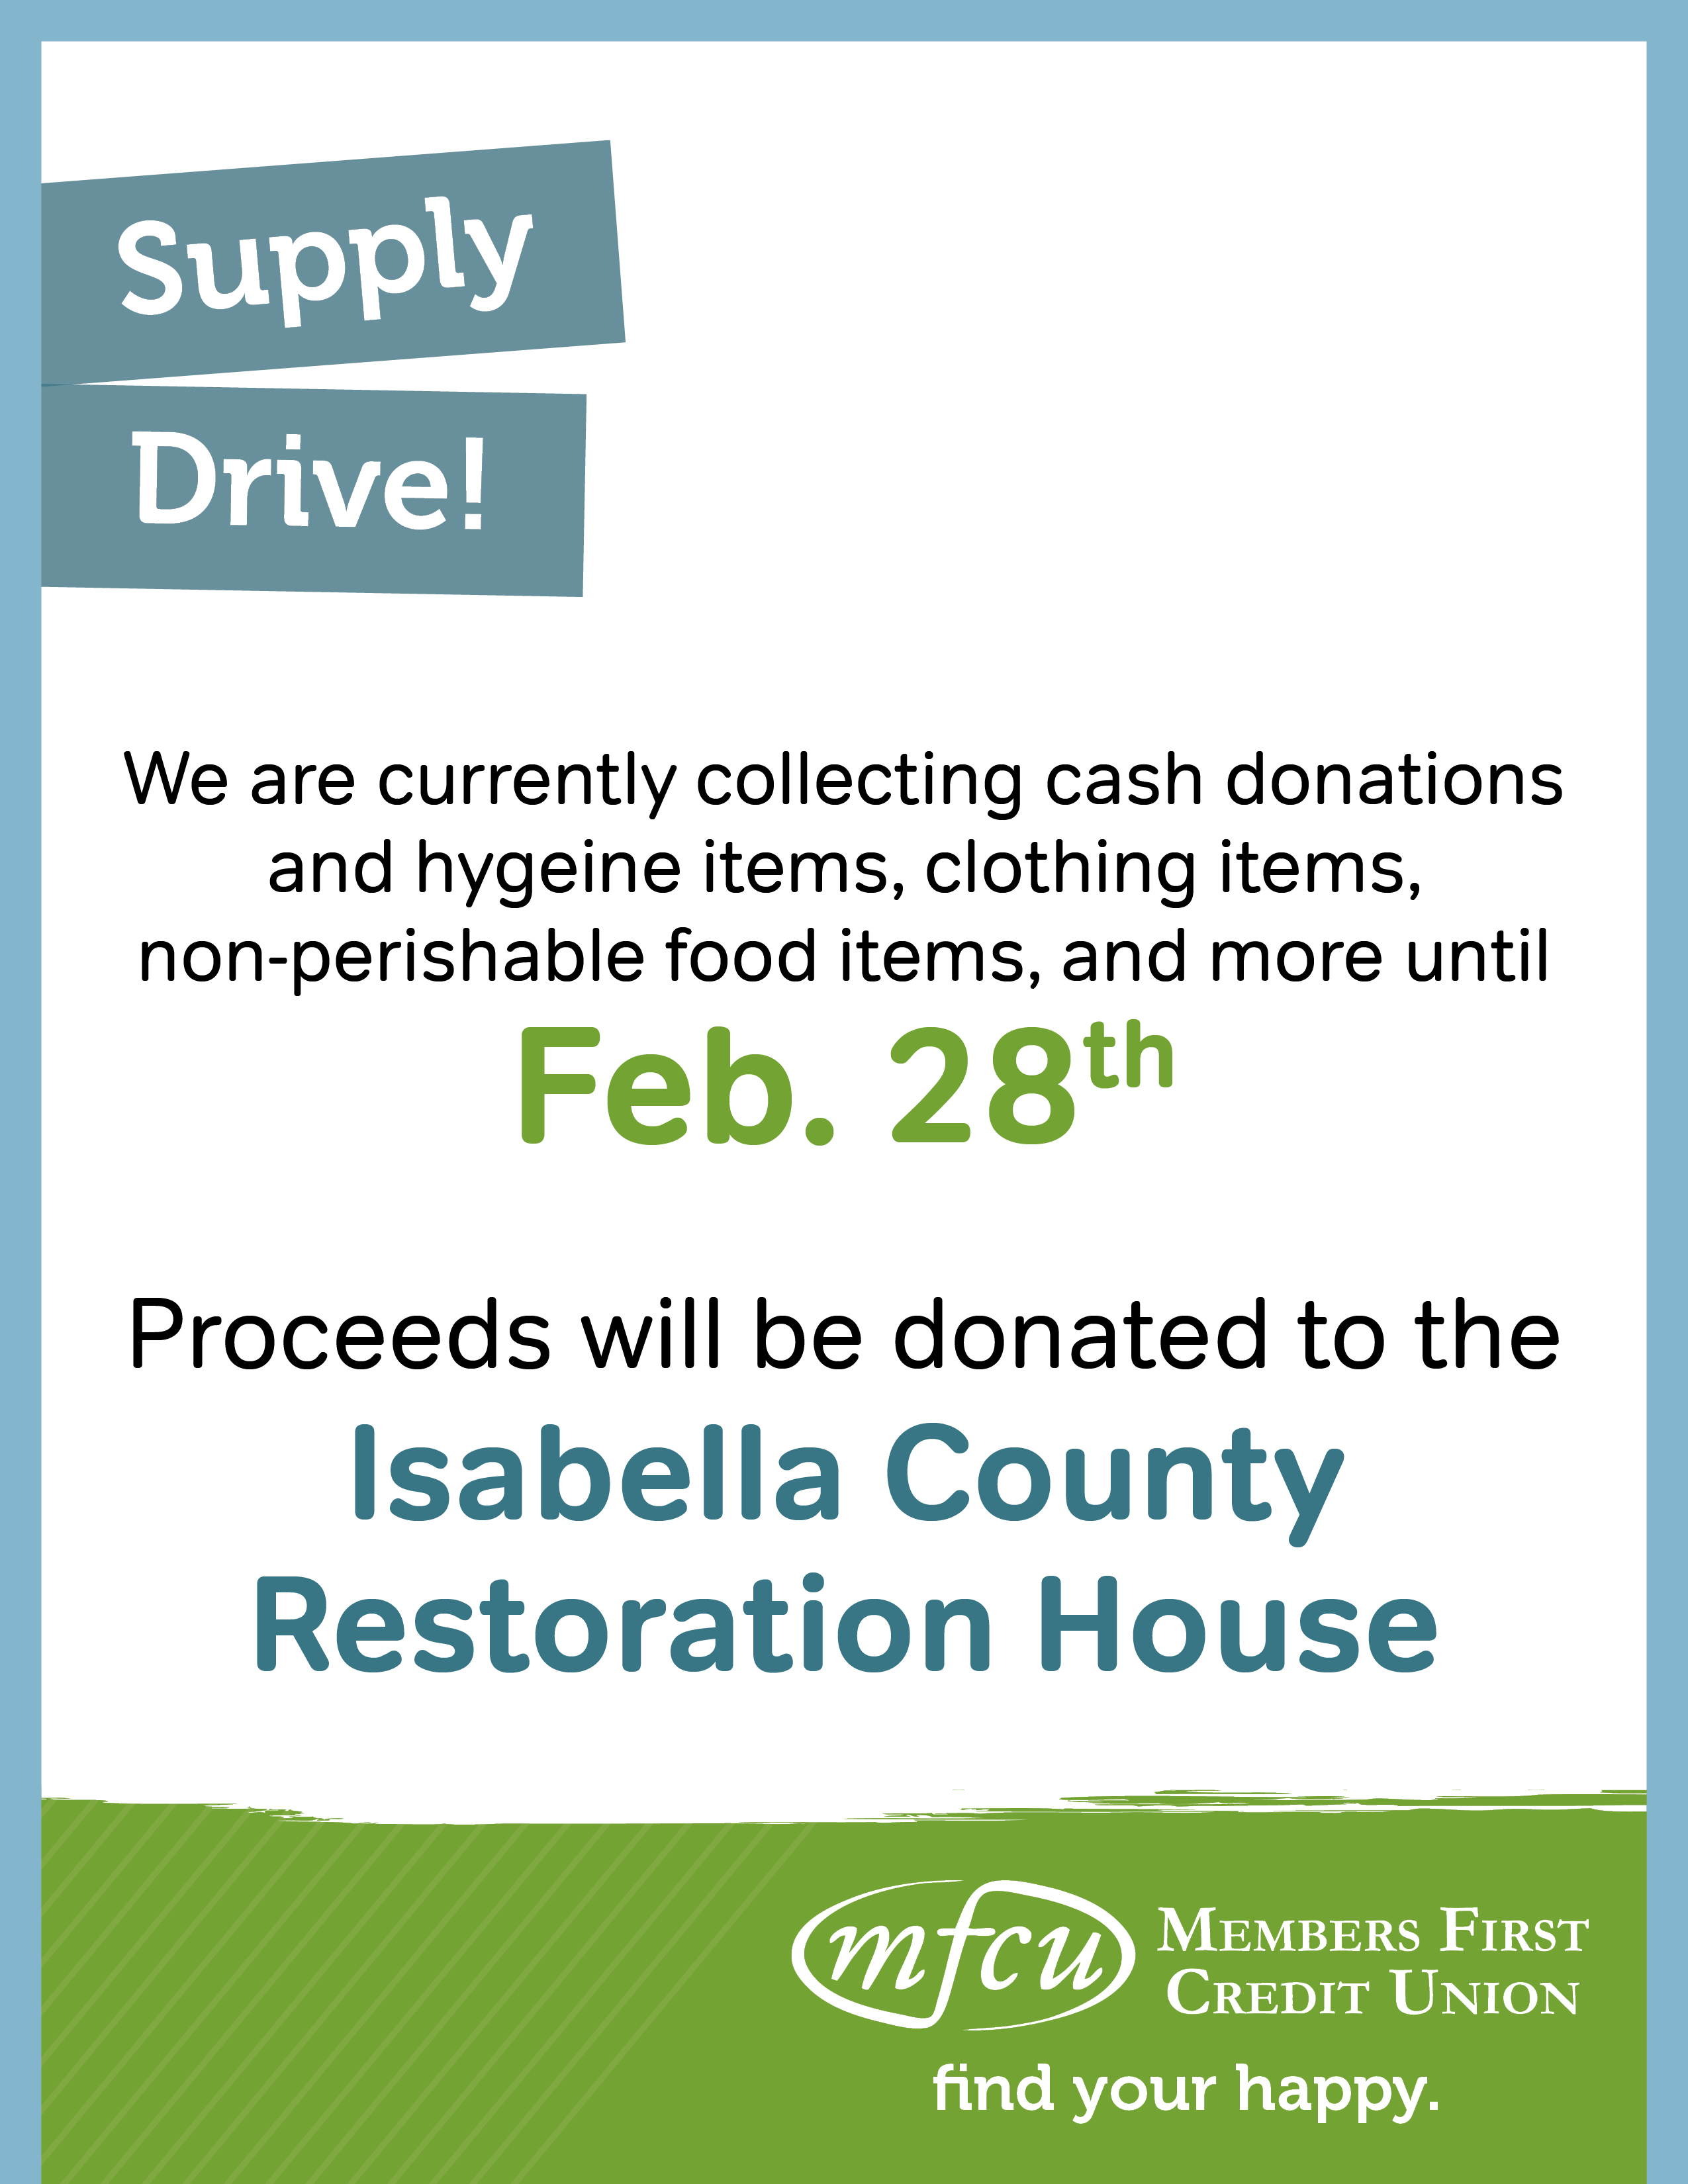 Supply Drive!